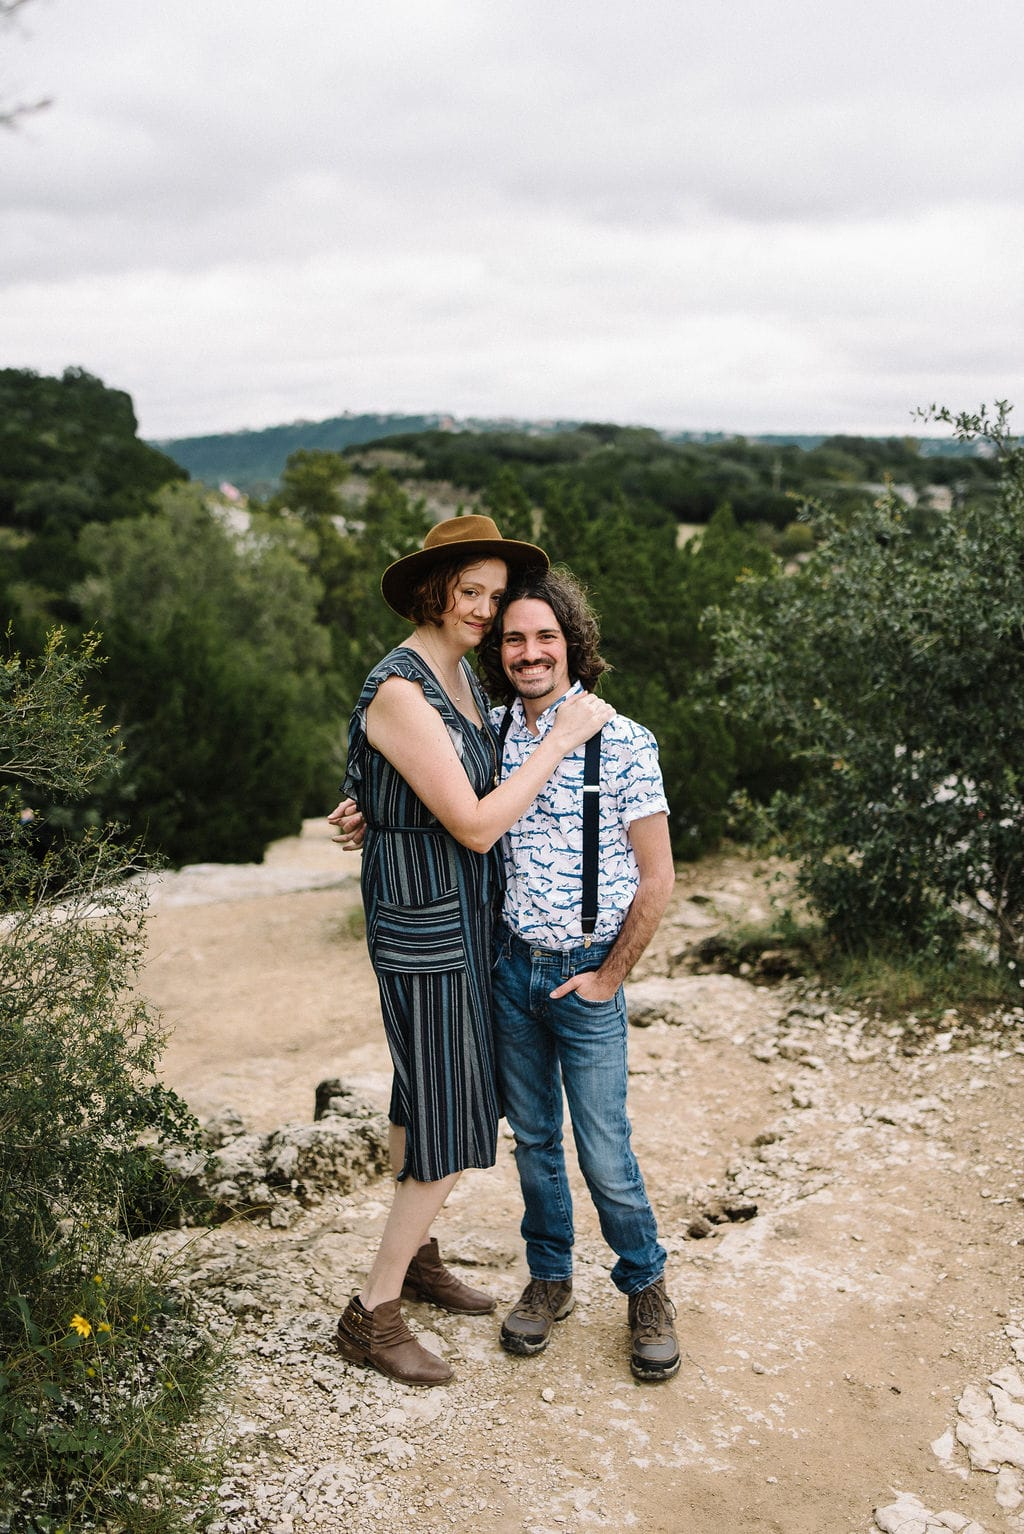 Engagement photos with suspenders. Hipster Engagement Photos in Austin, TX